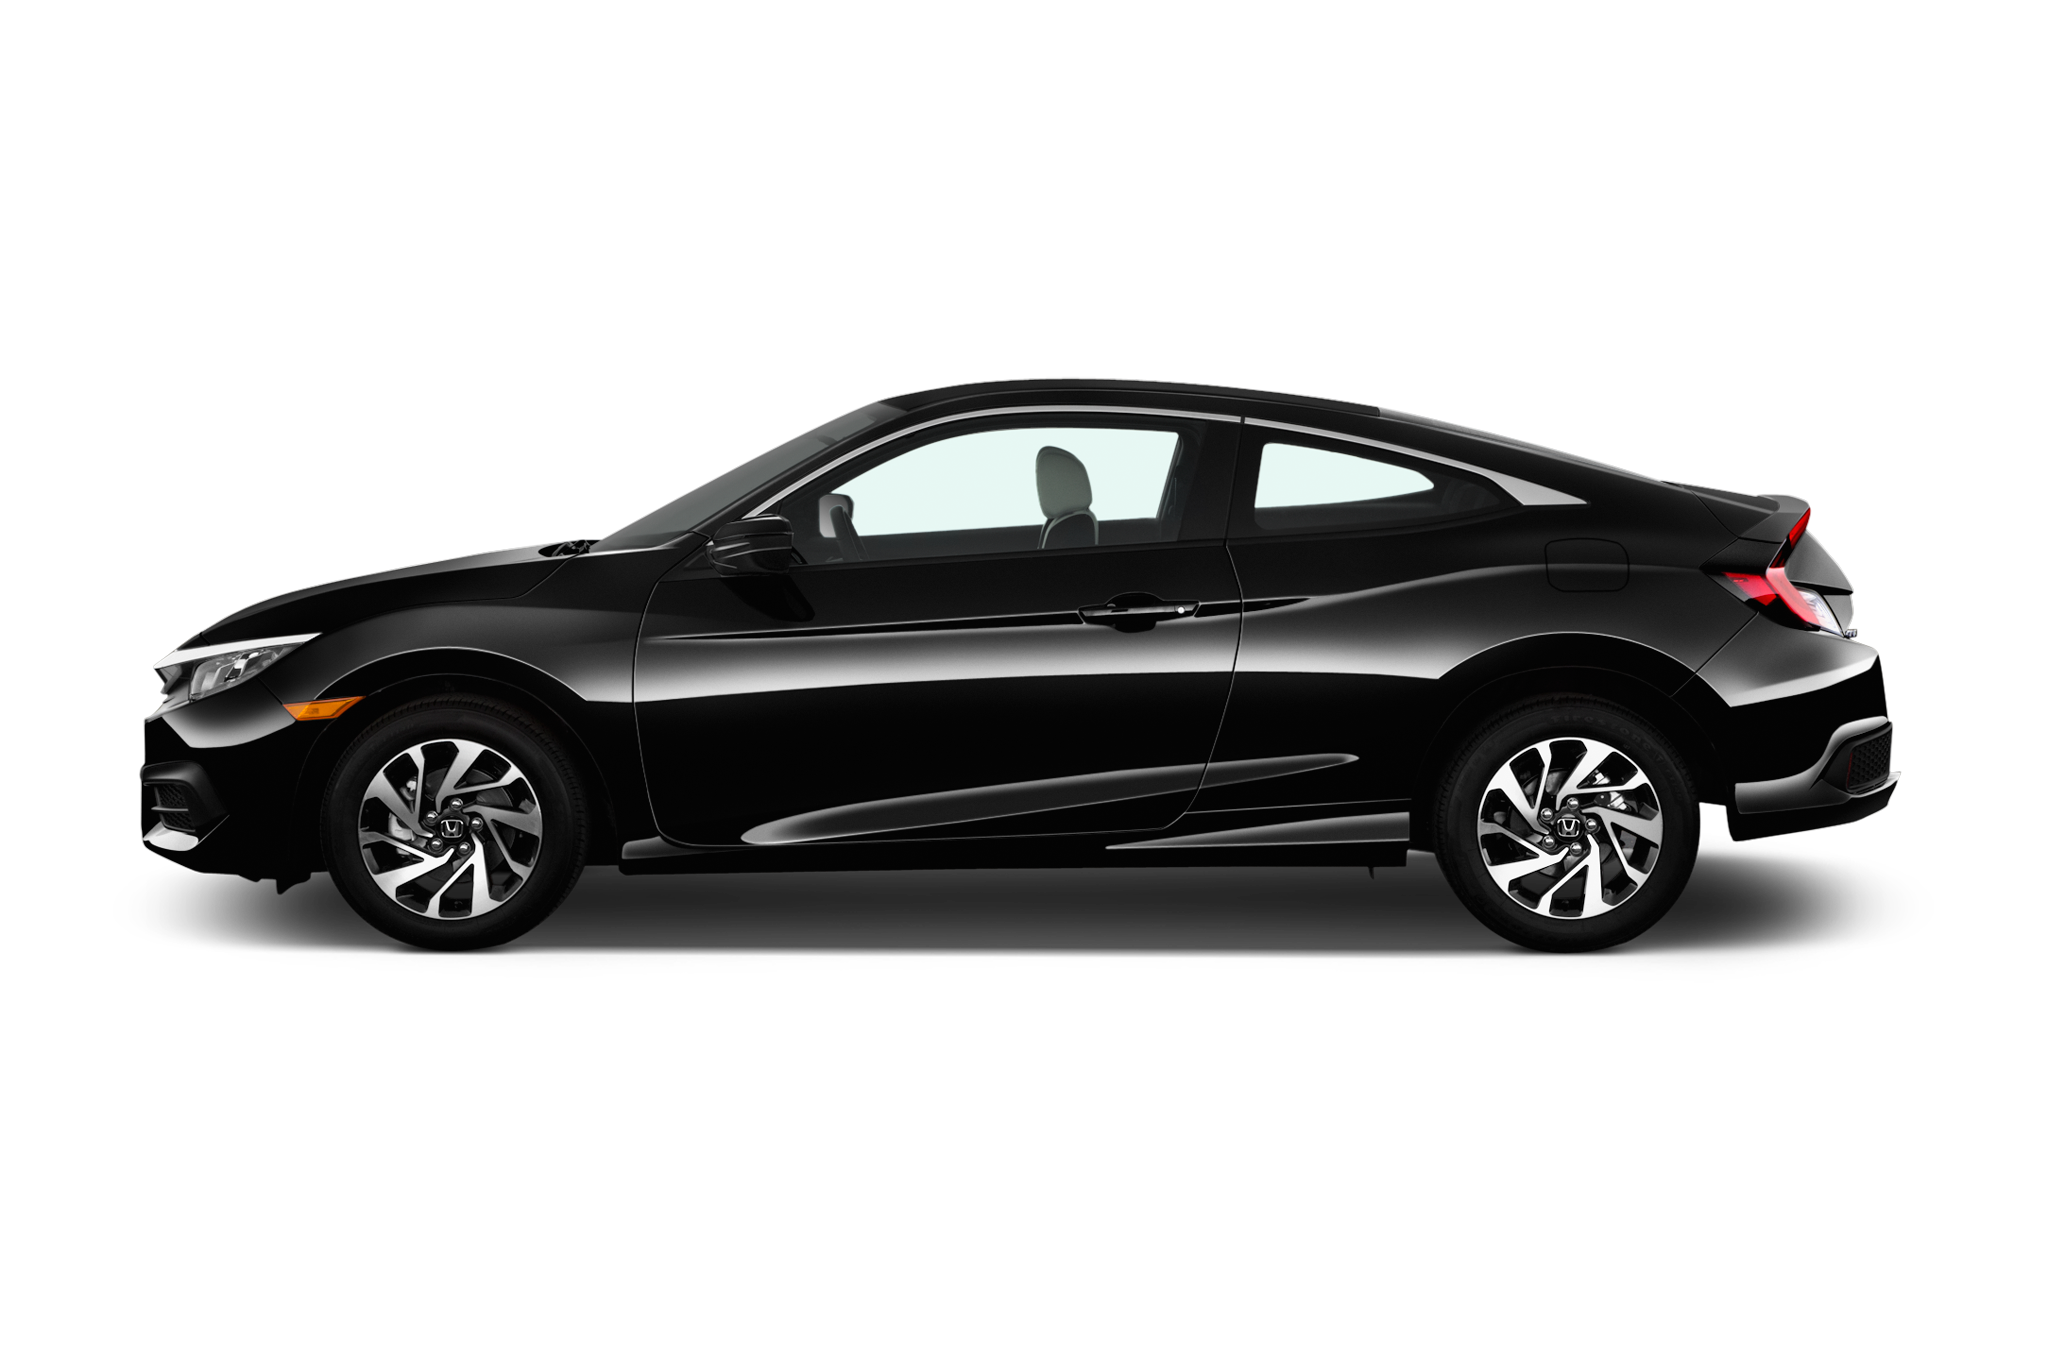 2016 honda civic lx coupe side view. Black Bedroom Furniture Sets. Home Design Ideas